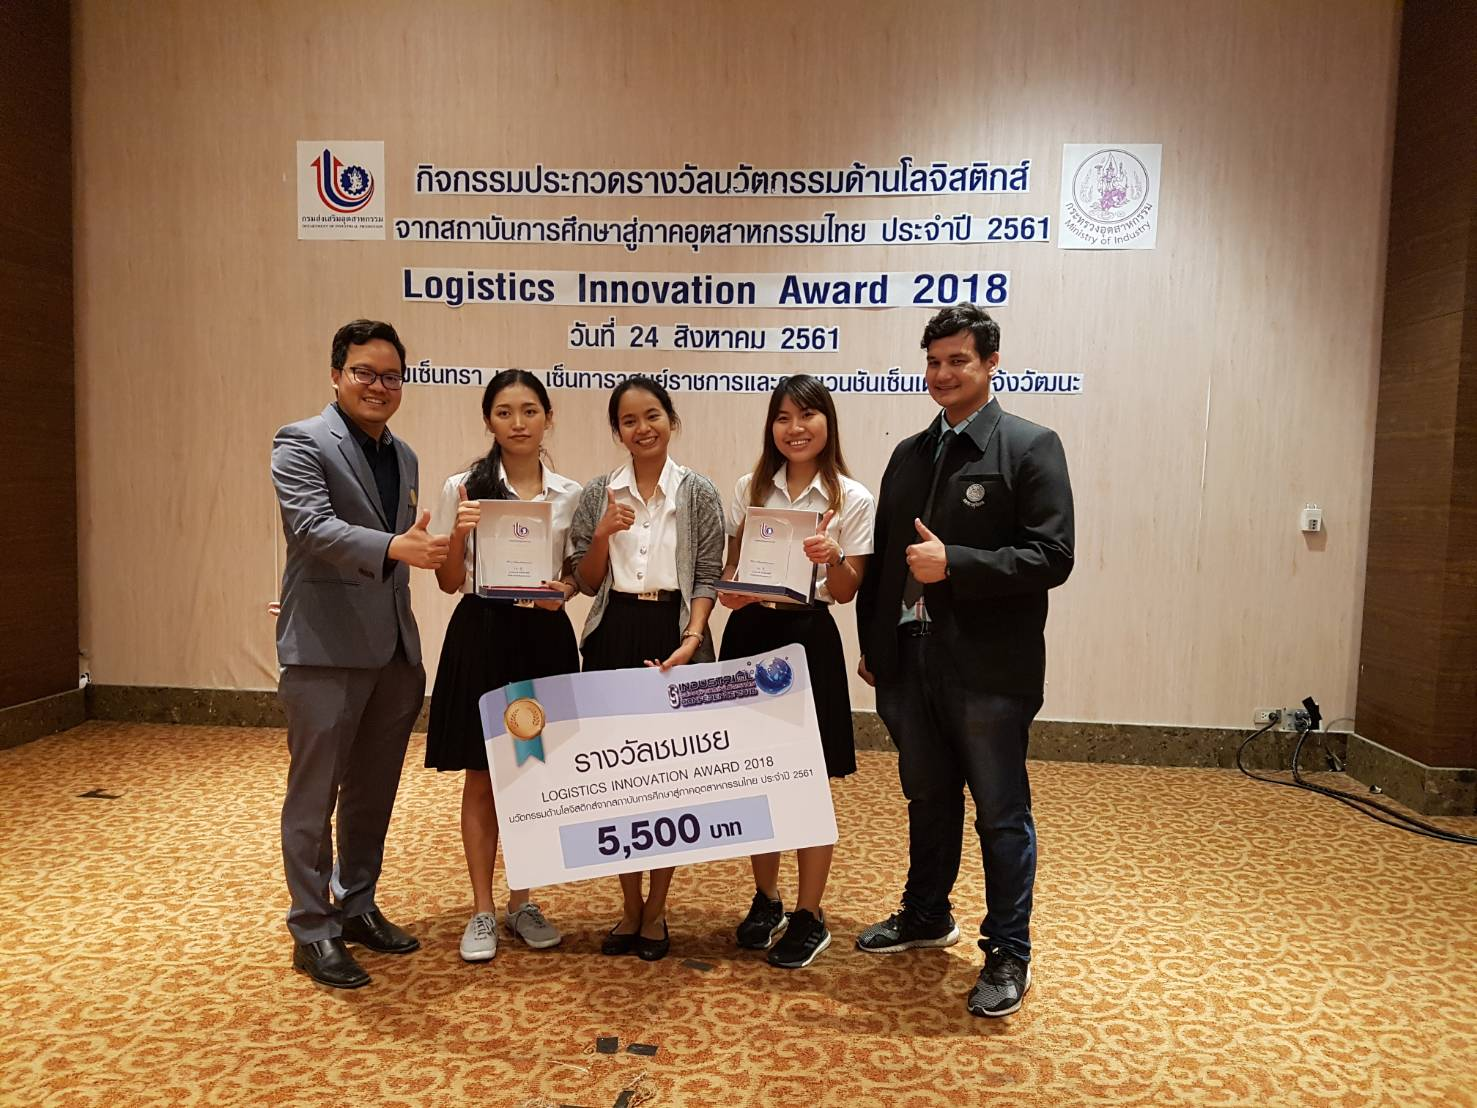 โครงการ Logistics Innovation Award 2018